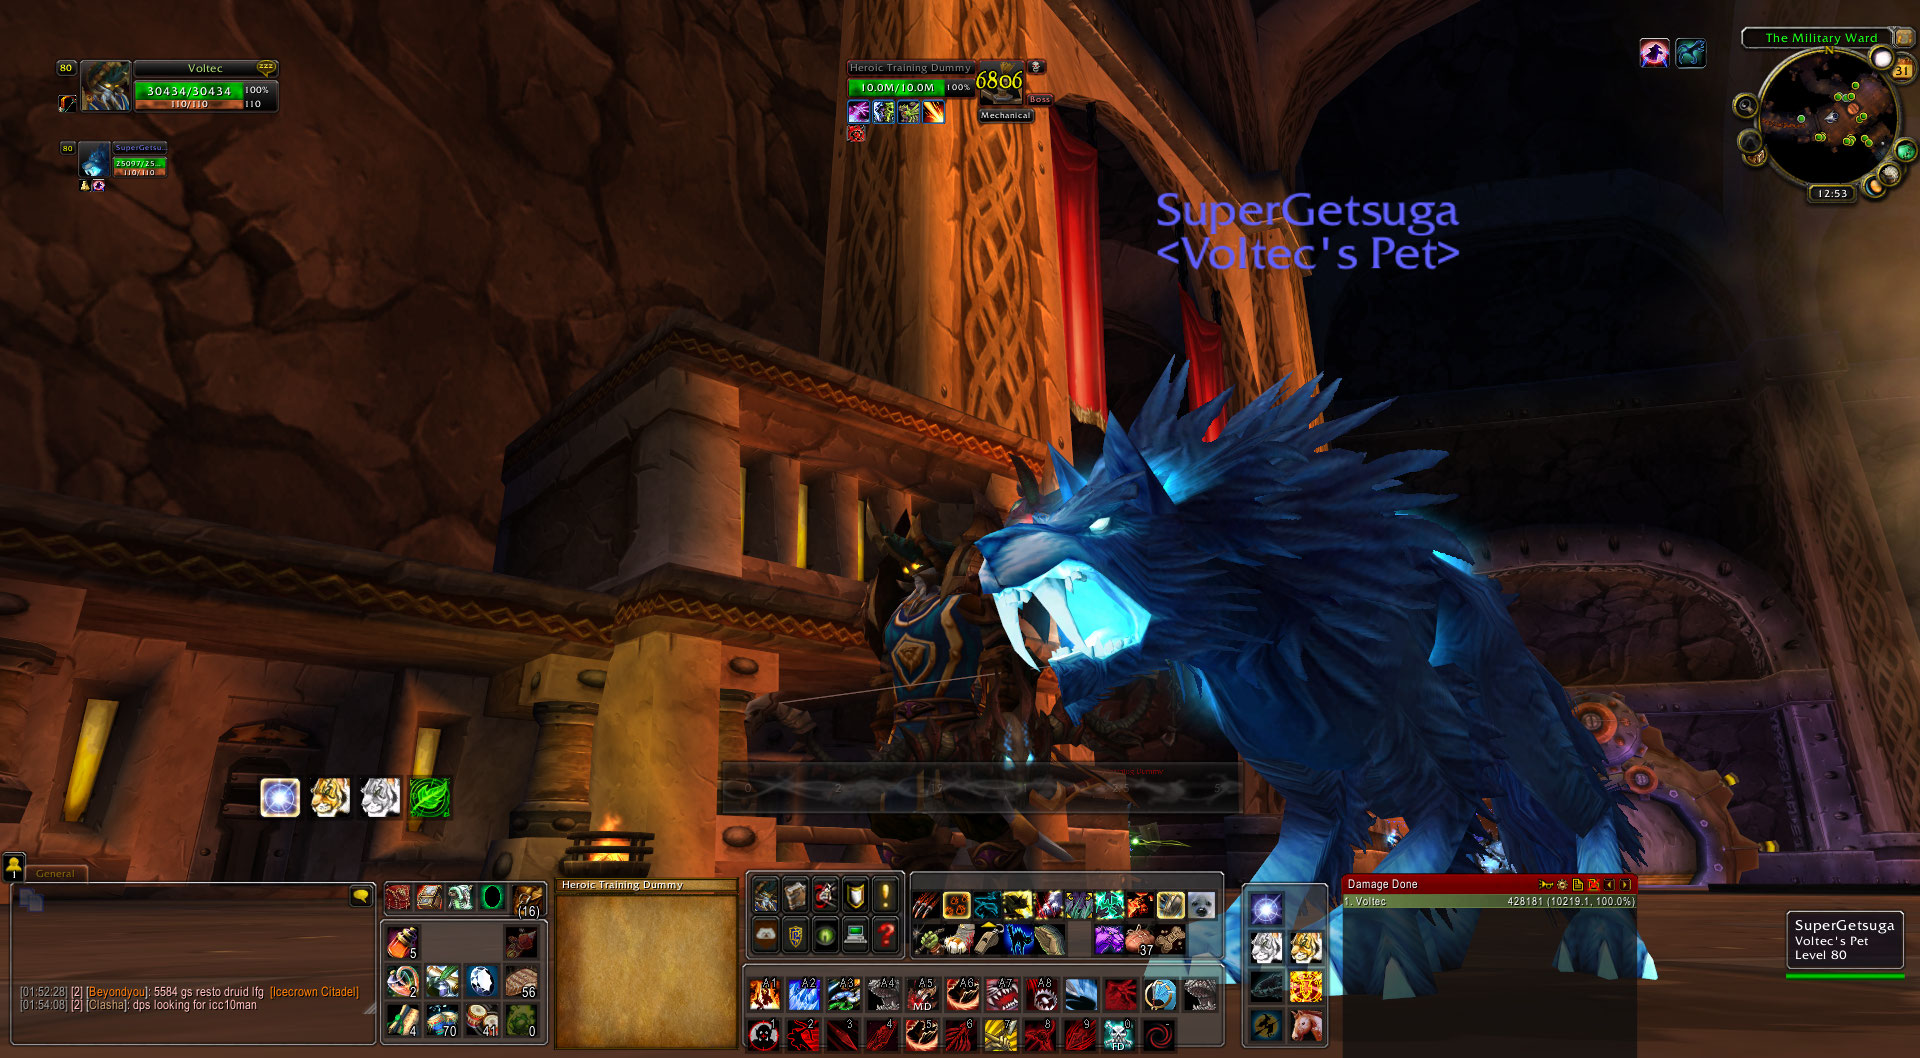 samanosukeshiva games this first continue mount reputation grind completed that today dropped when pairs acquisition achievement hopped about forgot accomplishment thread completely over bought picked recent different drake missing netherwing